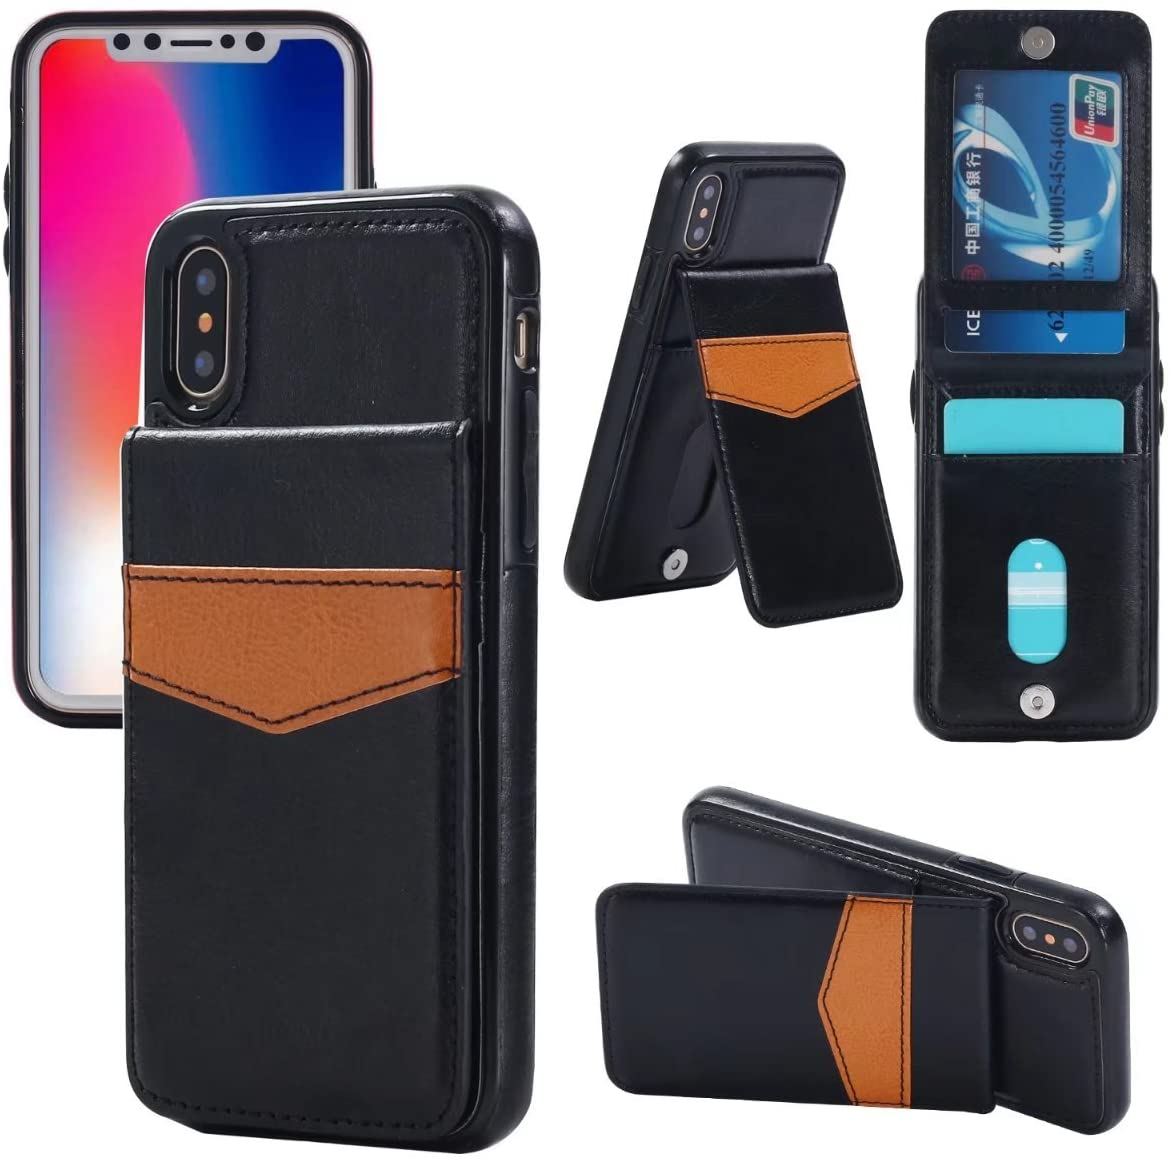 iPhone X Card Holder Case, iPhone Xs Card Holder Case, Small Knife Premium Leather Wallet iPhone X Case Flip Magnetic Shock-Absorbing Protective Case for iPhone X/Xs (Luxury Black)